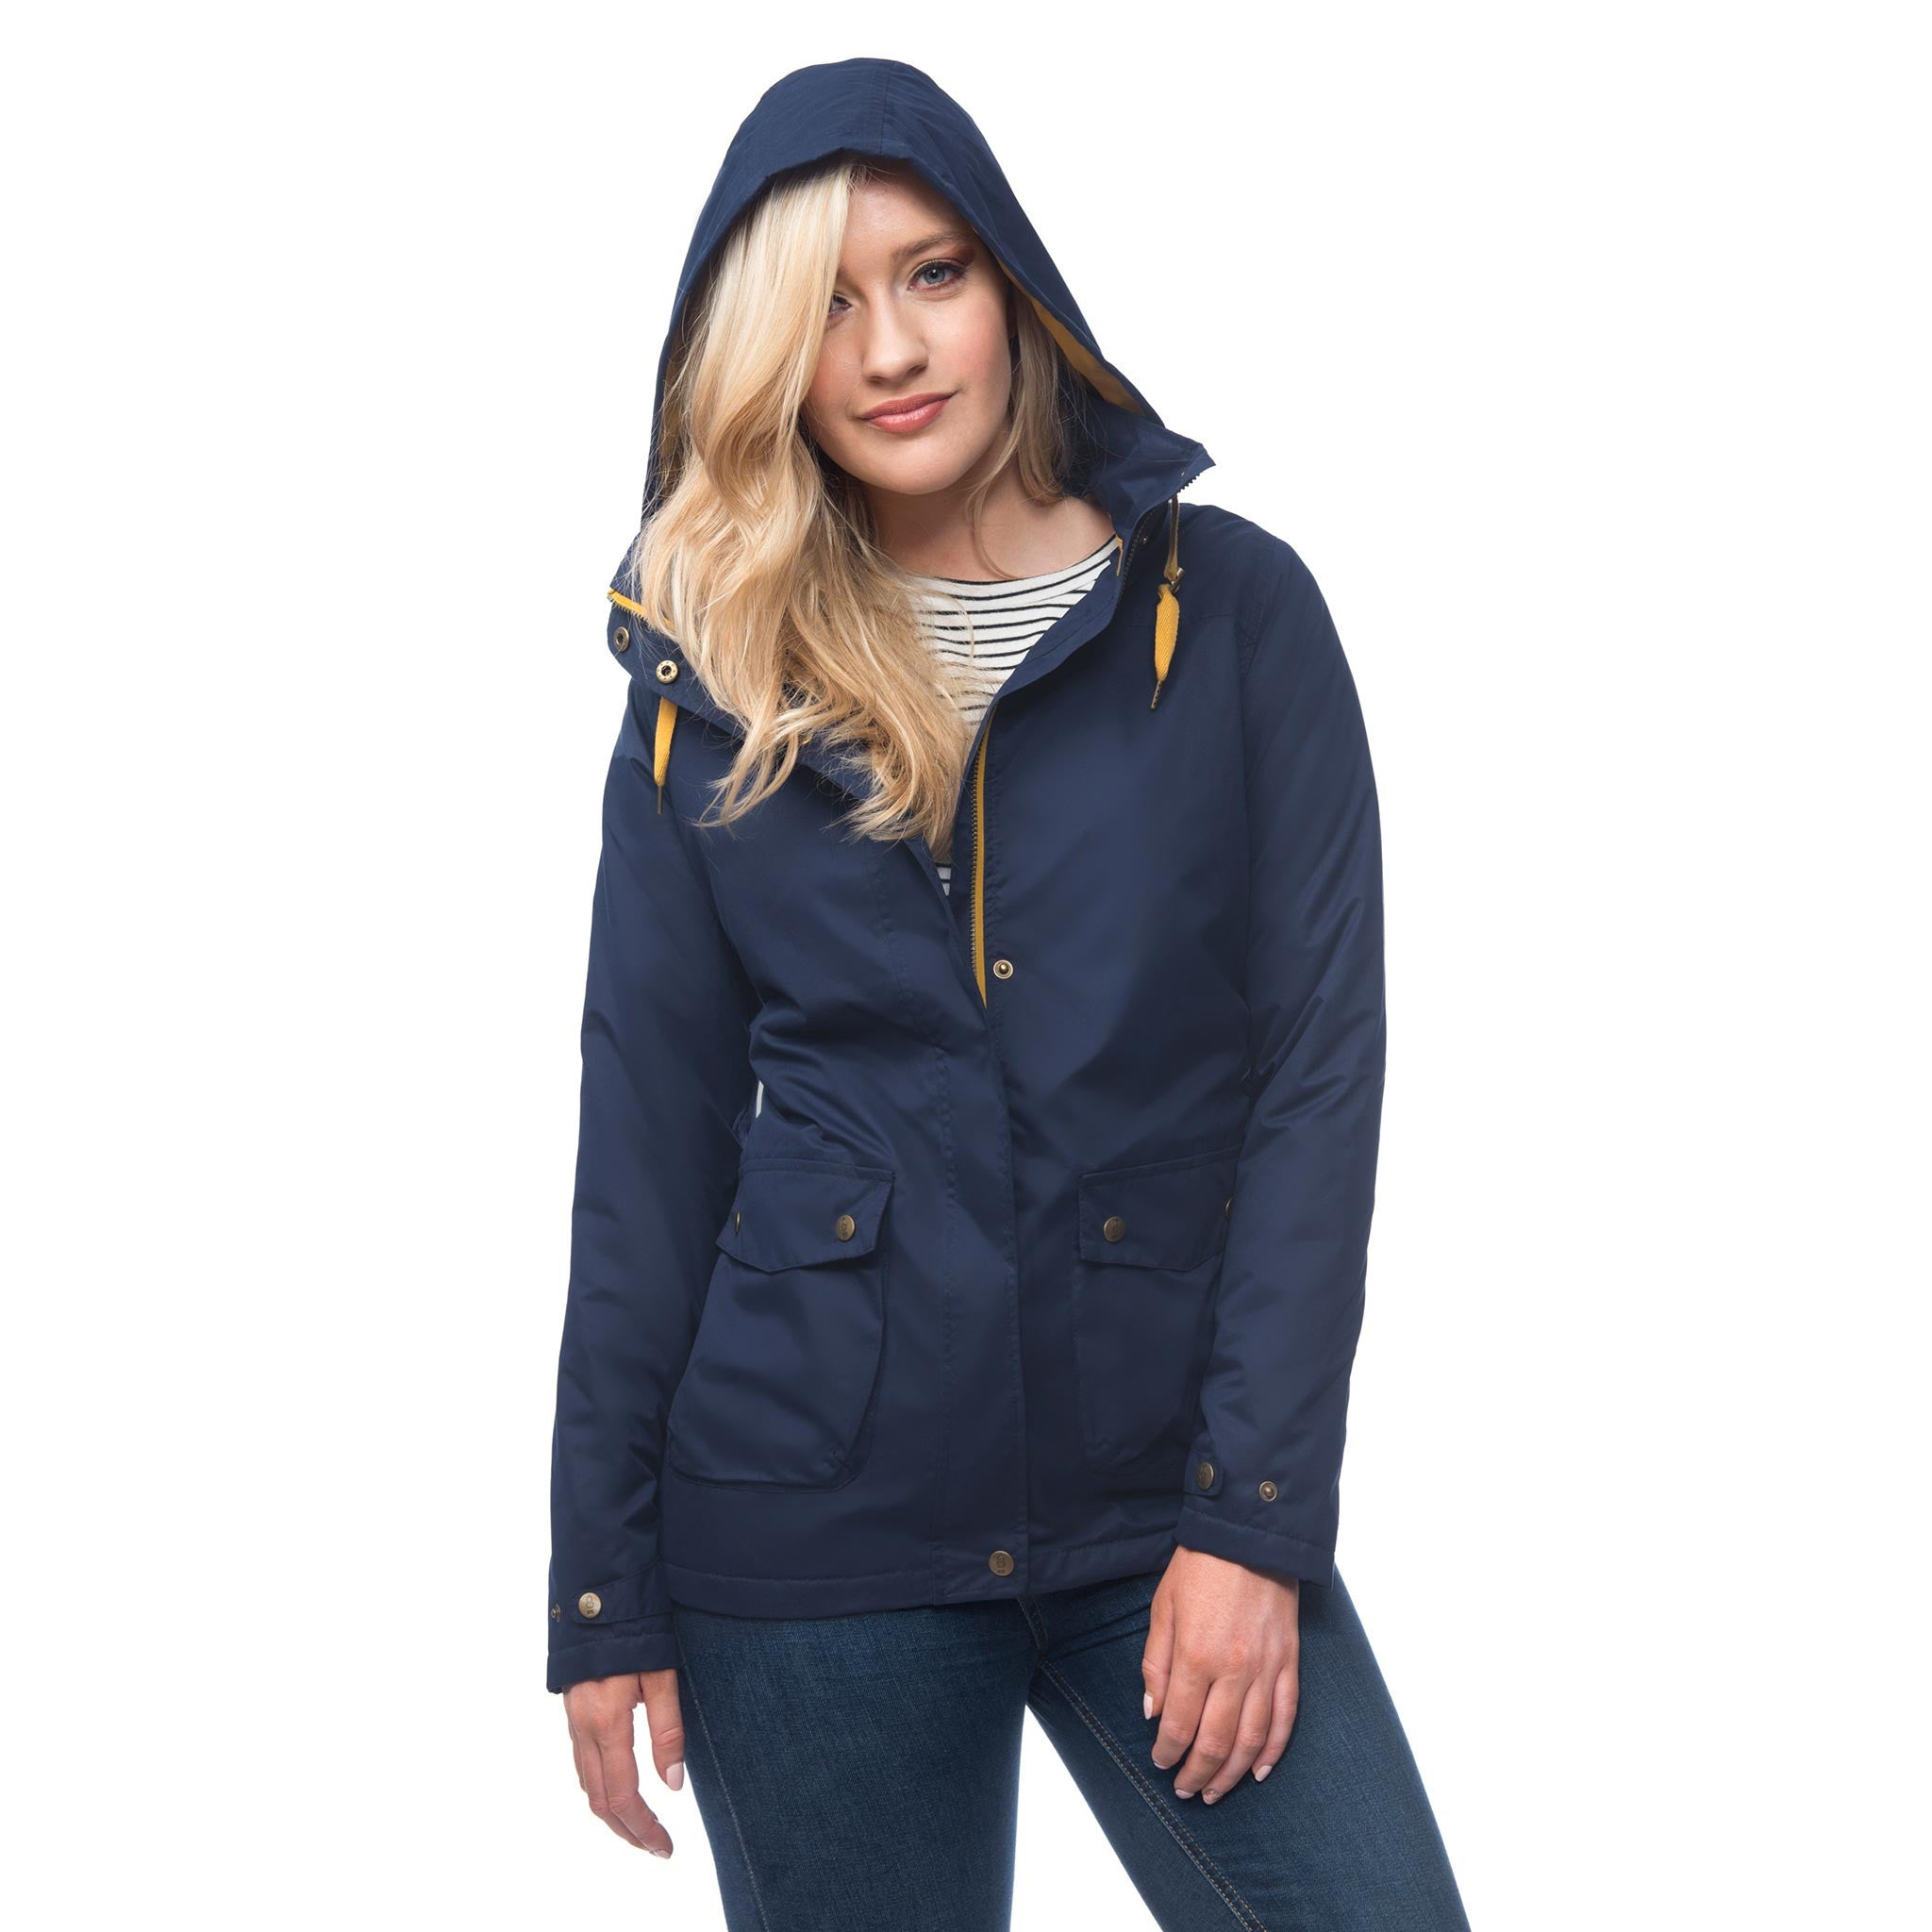 Lighthouse Alyssa Womens Waterproof Hooded Jacket in Navy. Half Zipped and Buttoned. Hood up.